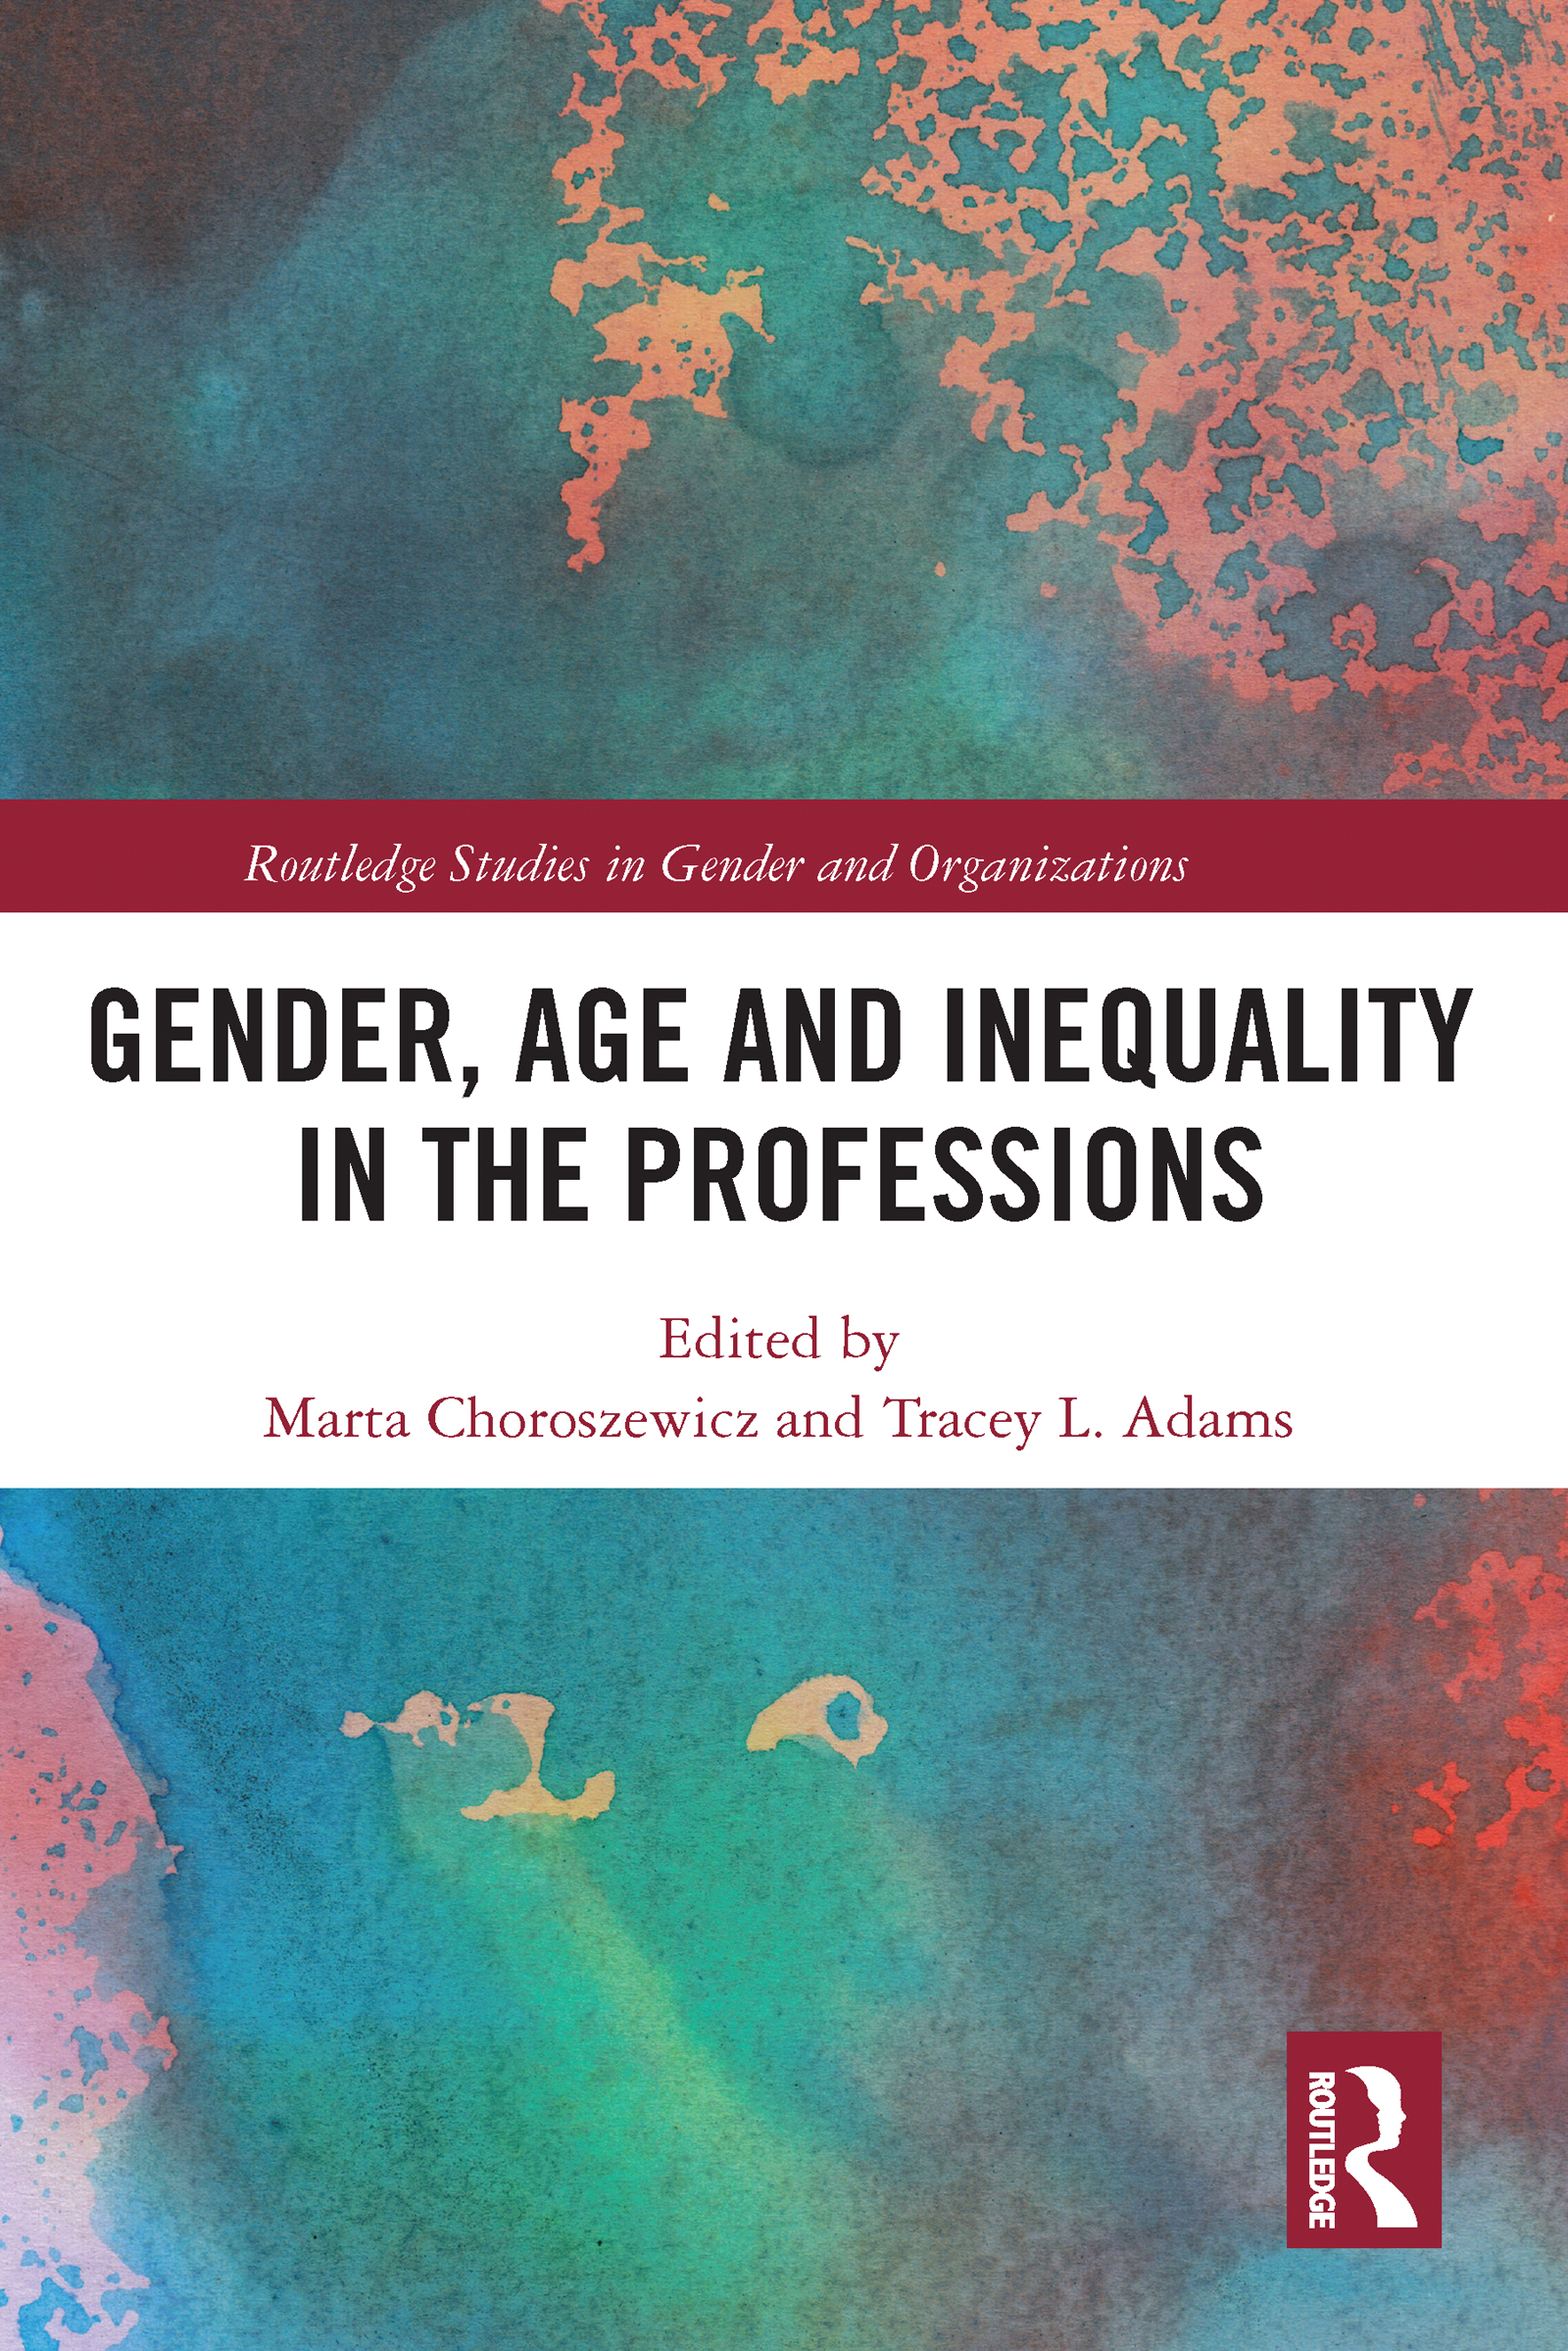 Gender, Age and Inequality in the Professions